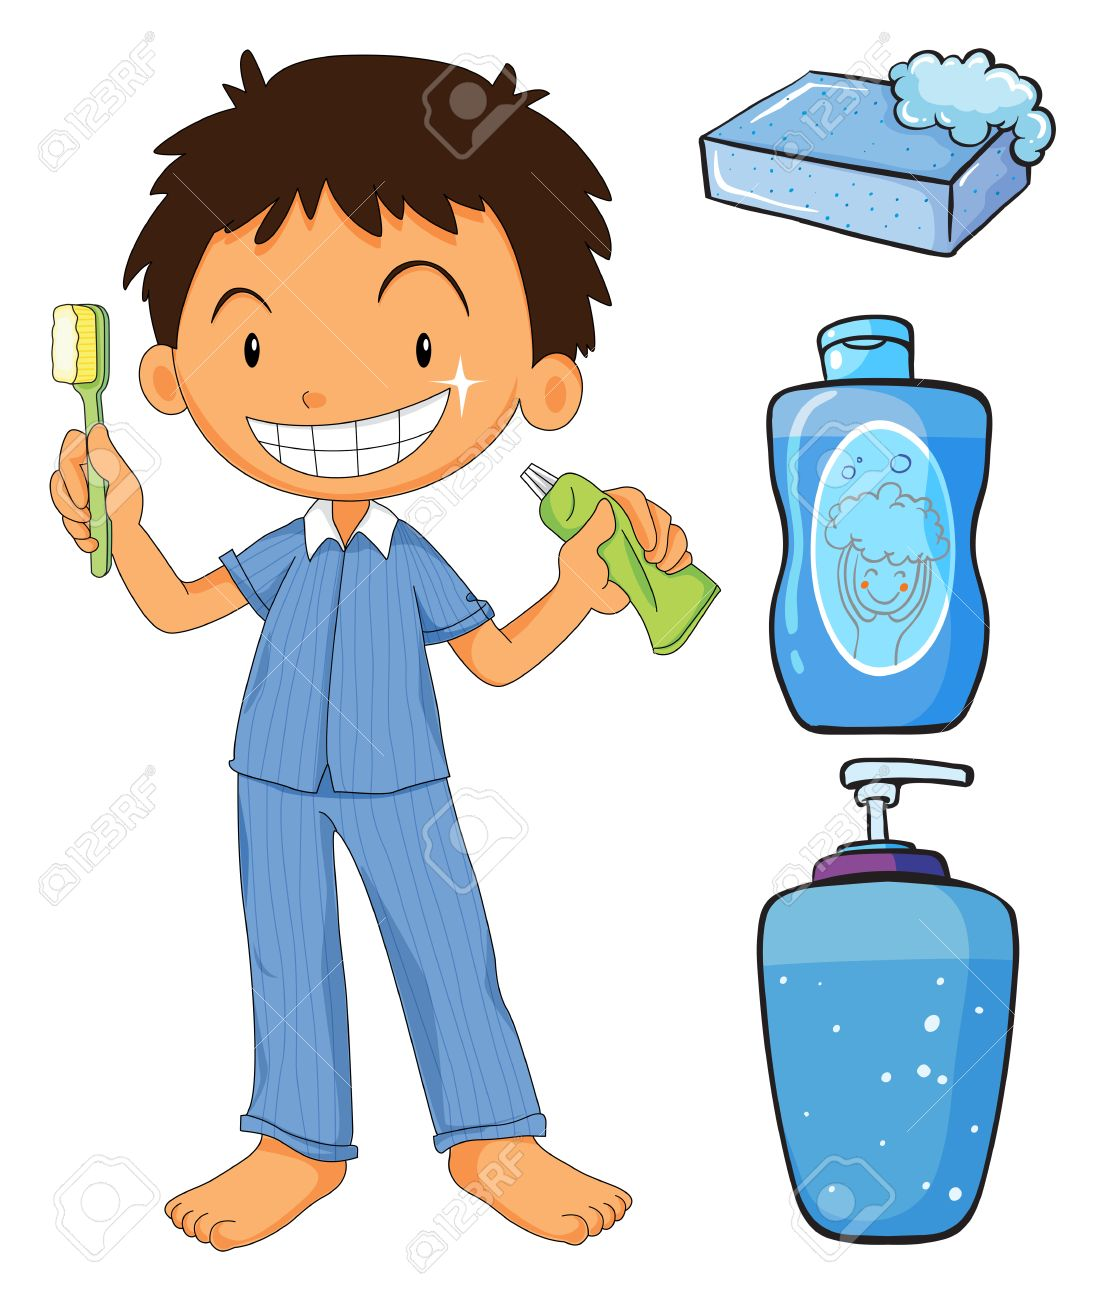 Boy in pajamas brushing teeth illustration.